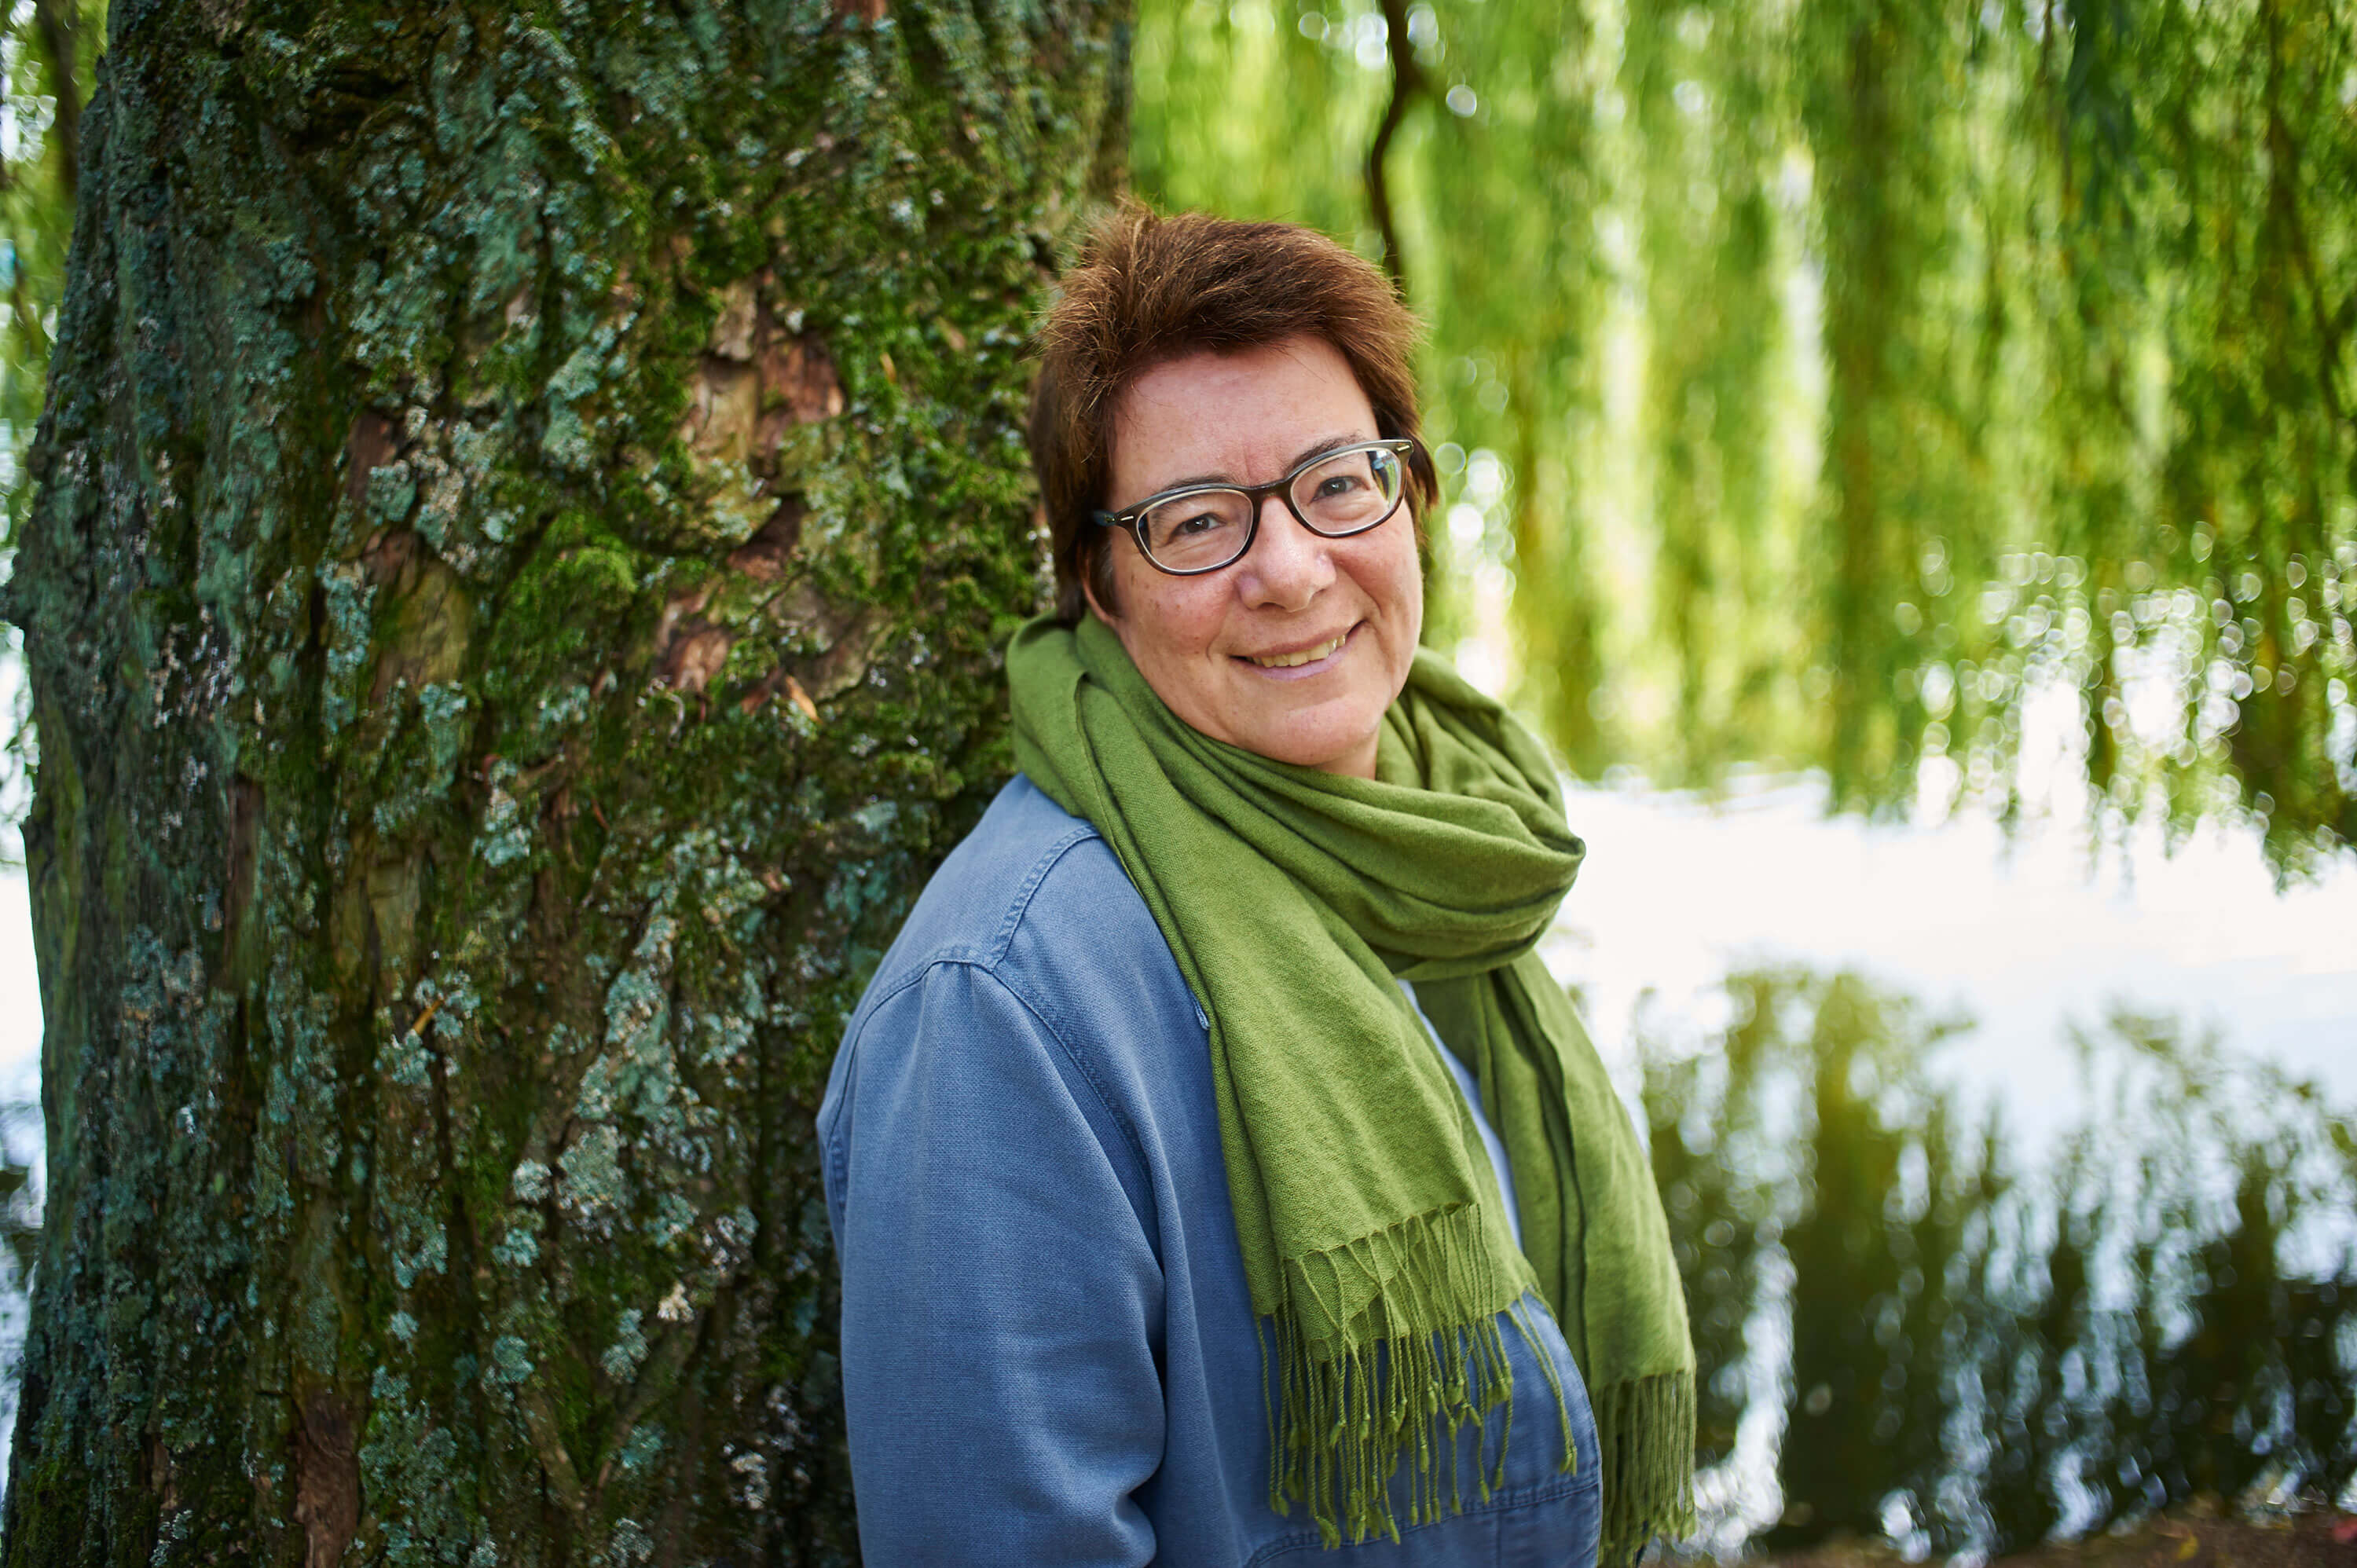 N8 AgriFood's Prof. Sue Hartley is appointed as Natural England Board member